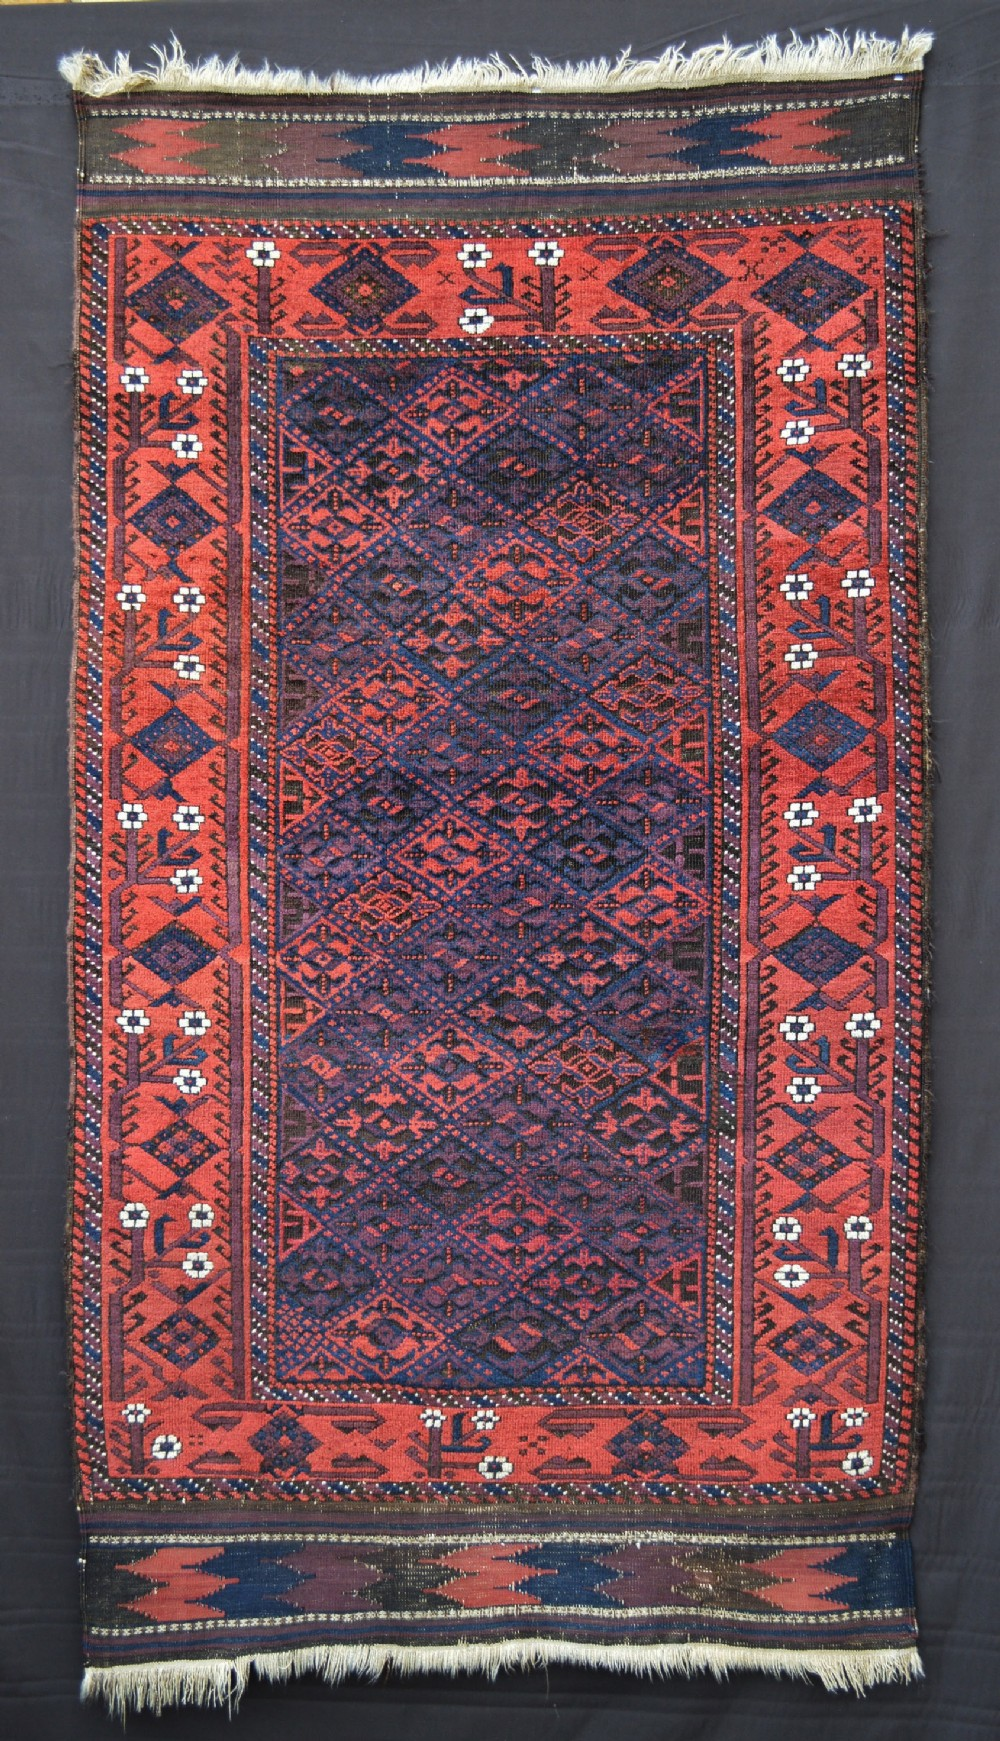 antique baluch rug ali mirza'i tribe khorassan province northeast persia